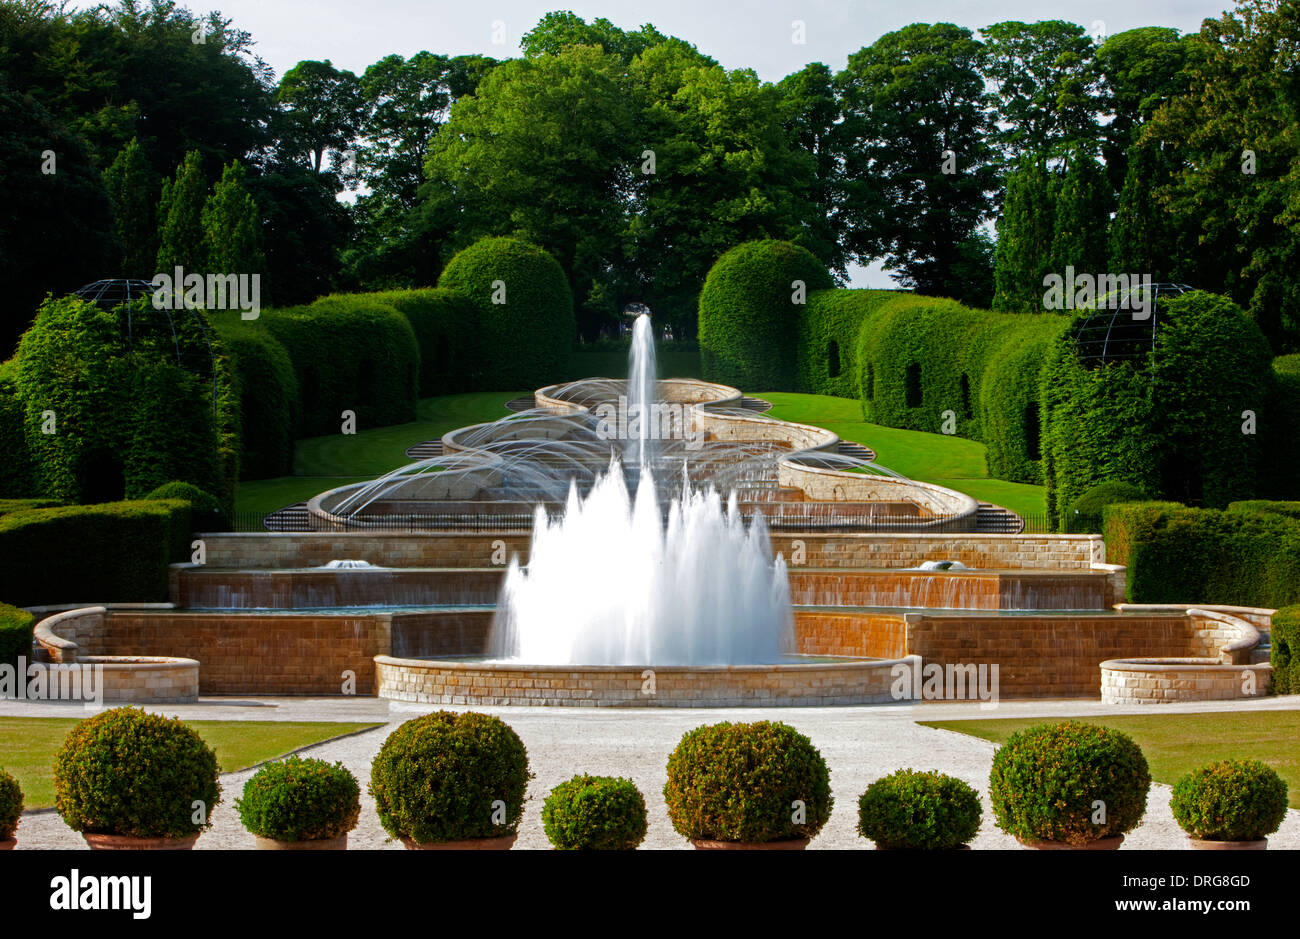 The Grand Cascade in summer sunshine at the Alnwick Garden in Alnwick, Northumberland - Stock Image